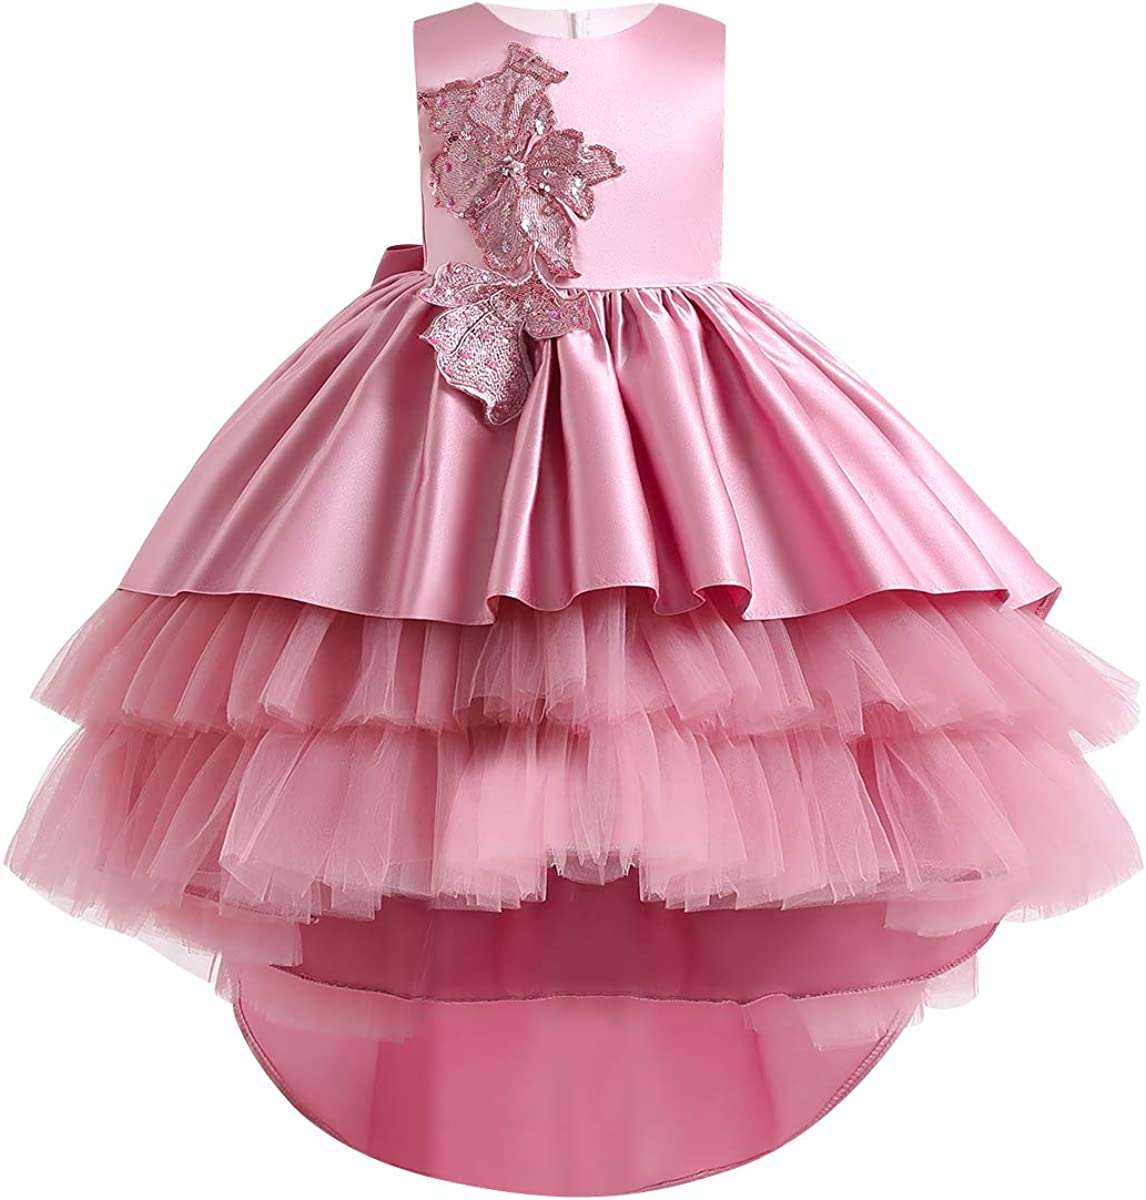 Flower Girls Lace Wedding Tulle Dresses Party High Low Princess Pageant Birthday Dance Evening Maxi Prom Gown for Kids